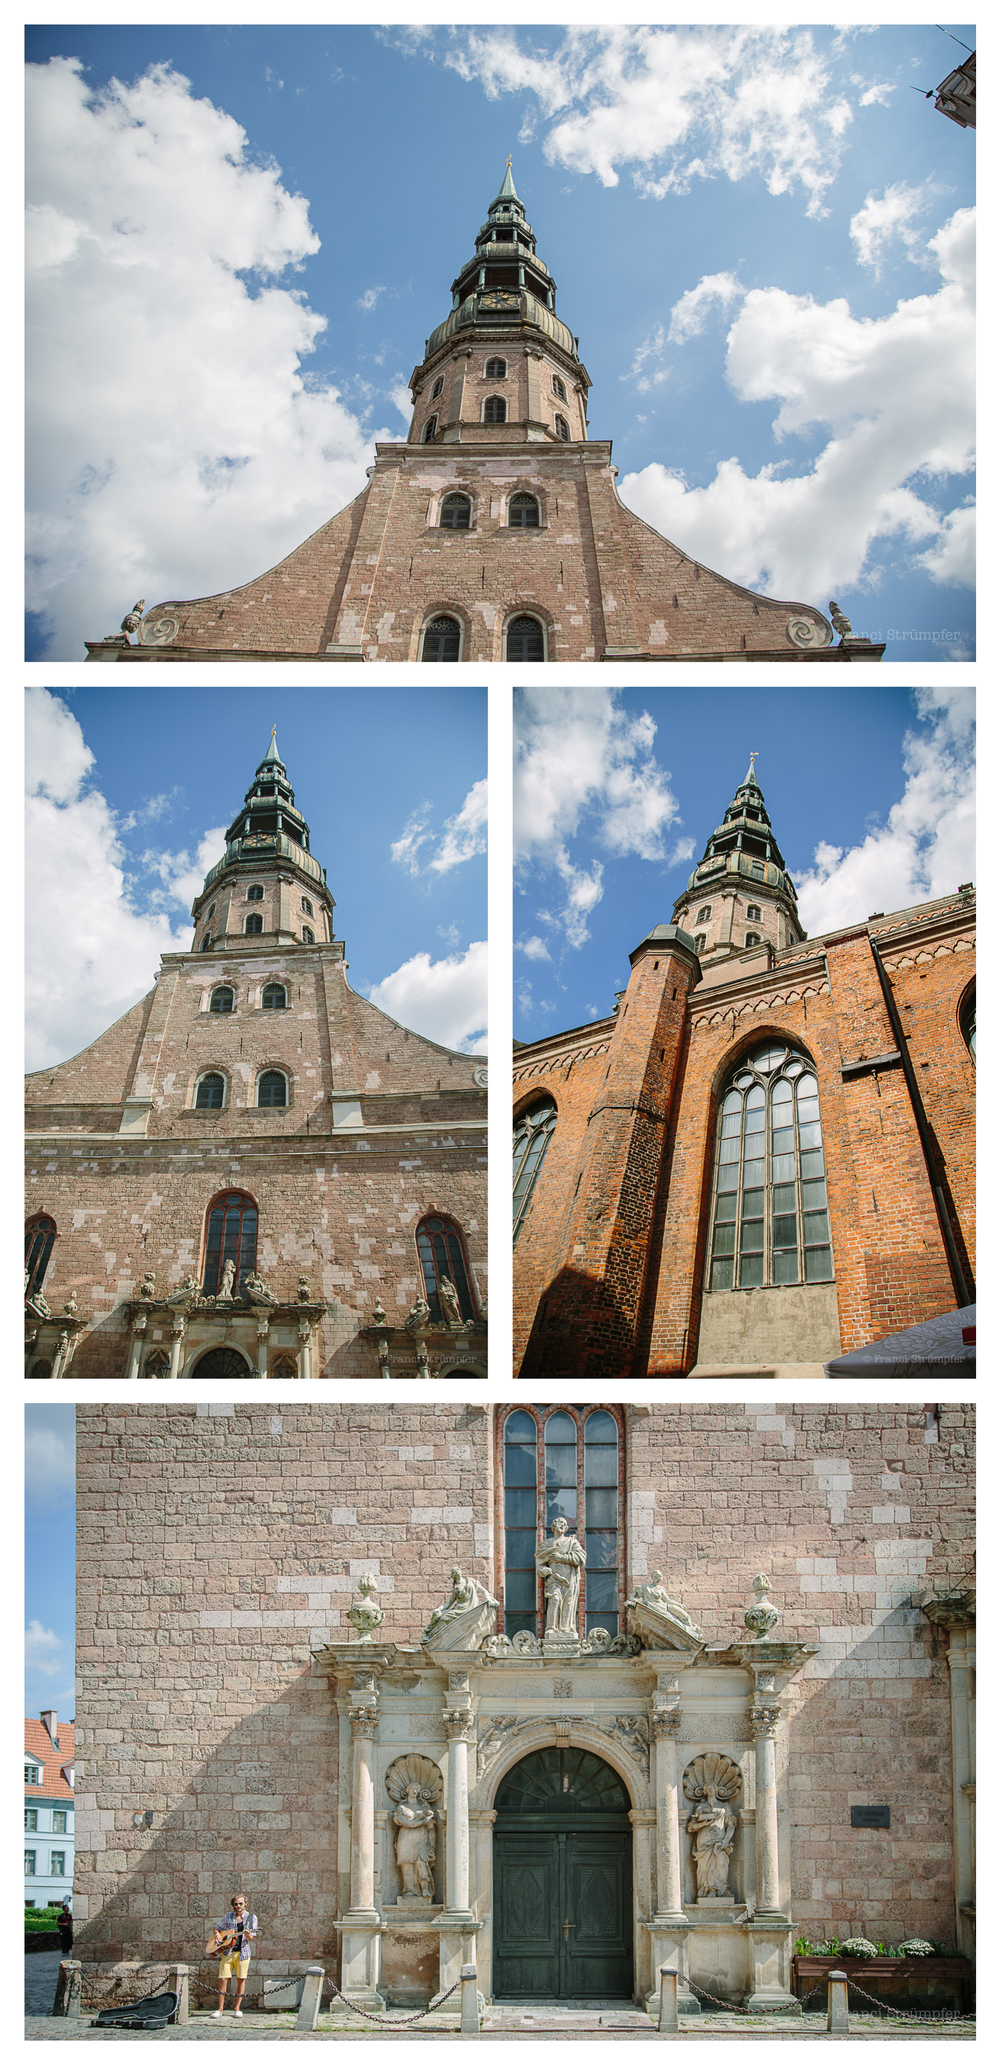 Eerste melding van die St Peter's Church is in Riga rekords van 1209.